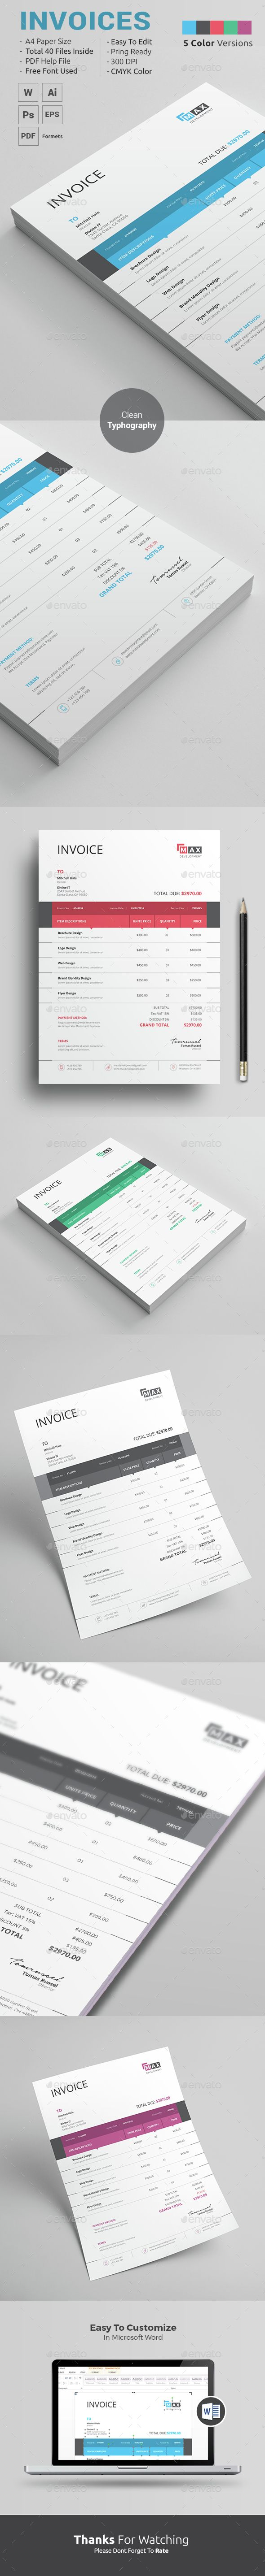 #Clean Invoice Template..Download here: http://graphicriver.net/item/clean-invoice/14779685?ref=arroganttype